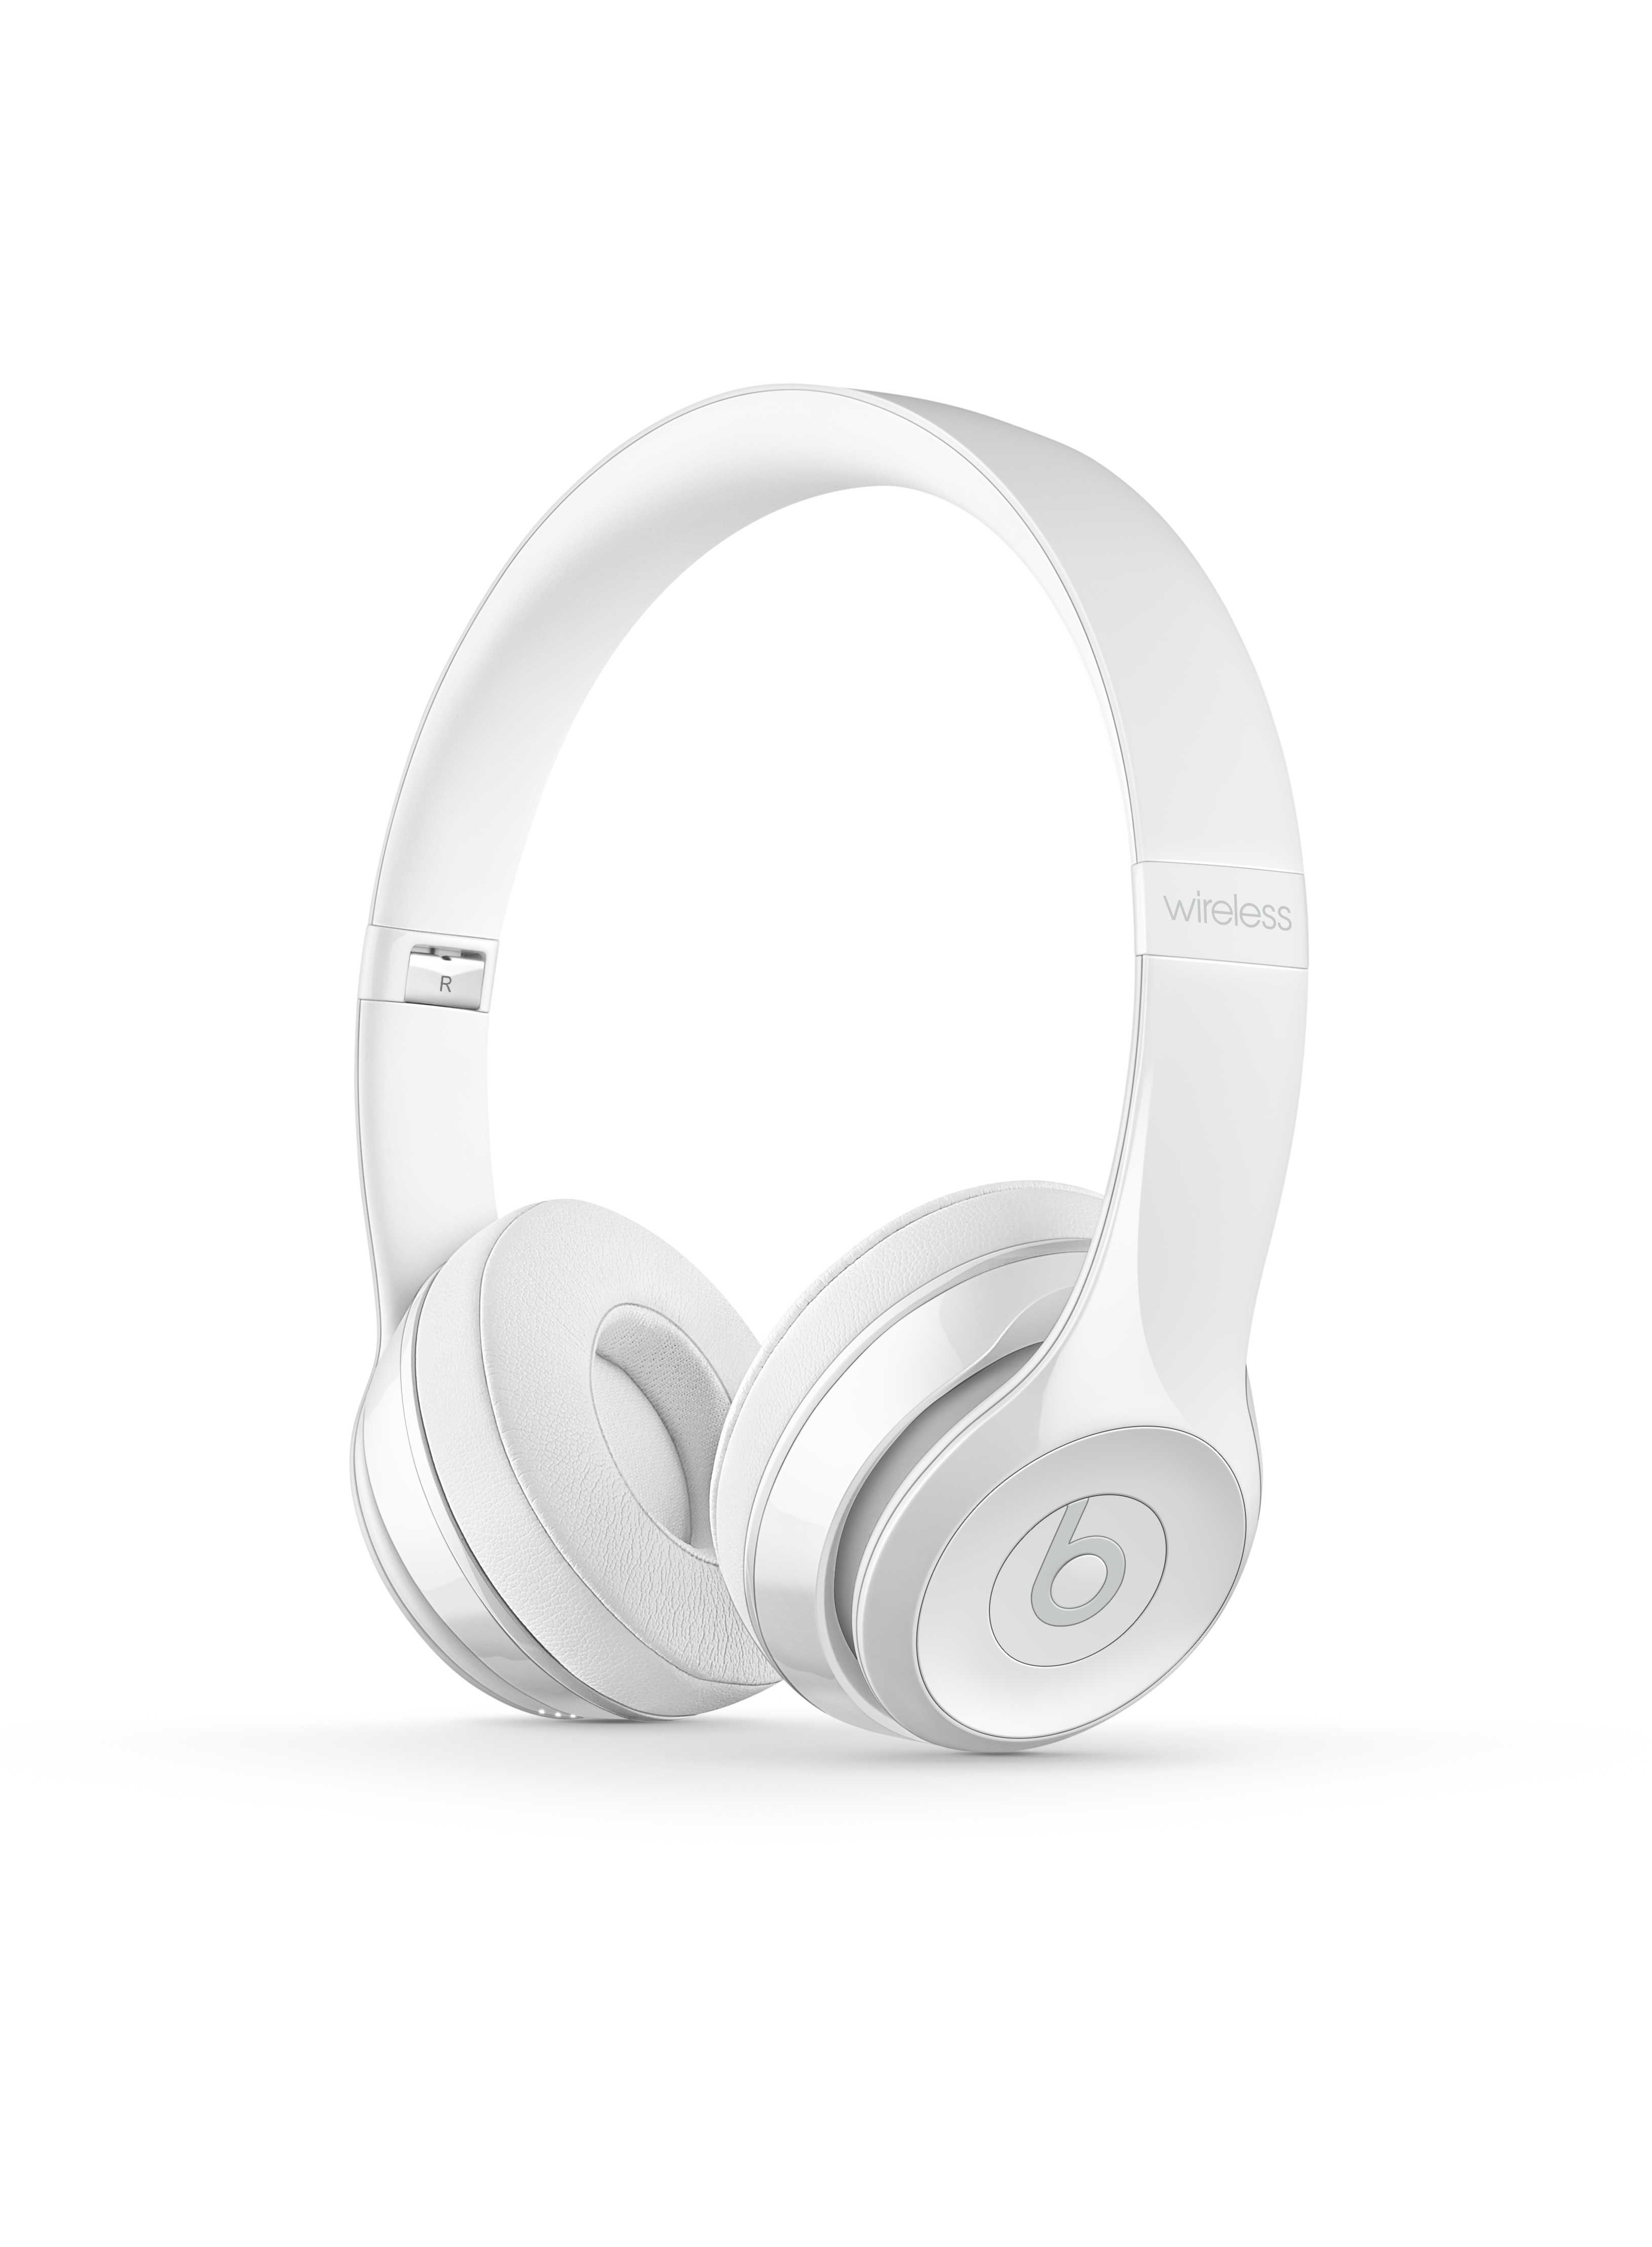 These Beats Headphones Are The Perfect Gift For The Holidays